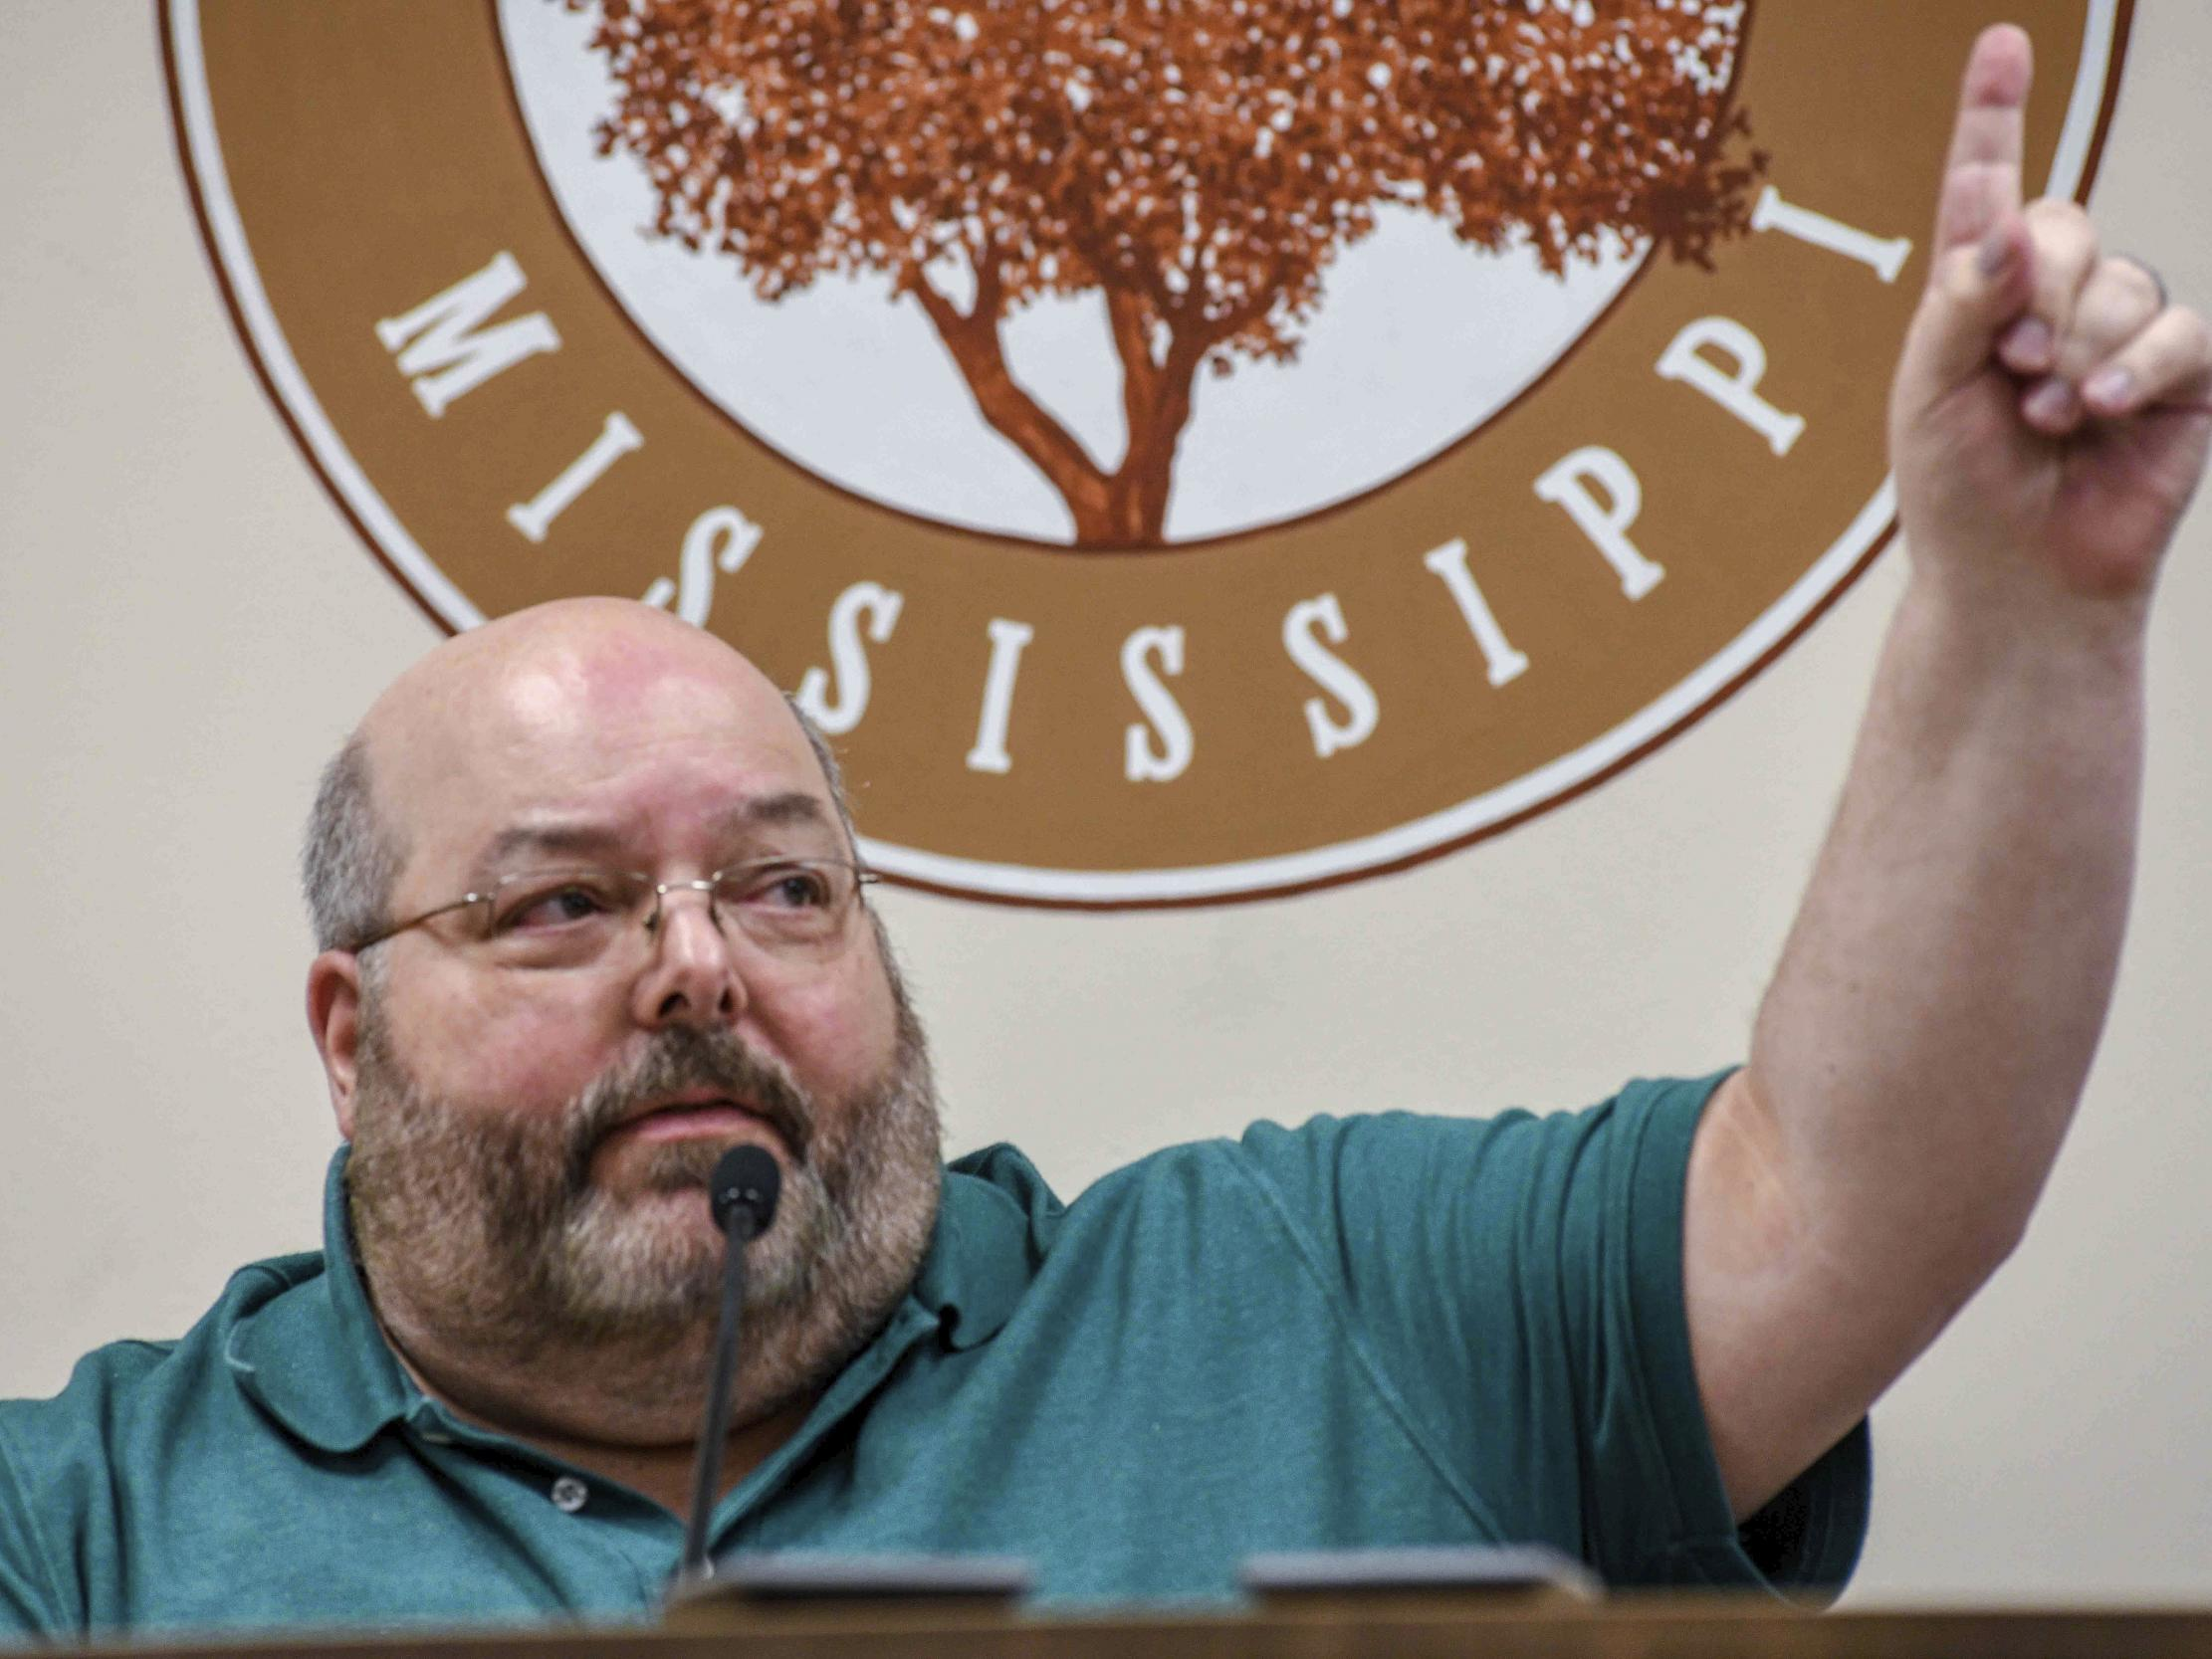 'If you can say you can't breathe, you're breathing': Mississippi mayor faces backlash over George Floyd comments thumbnail